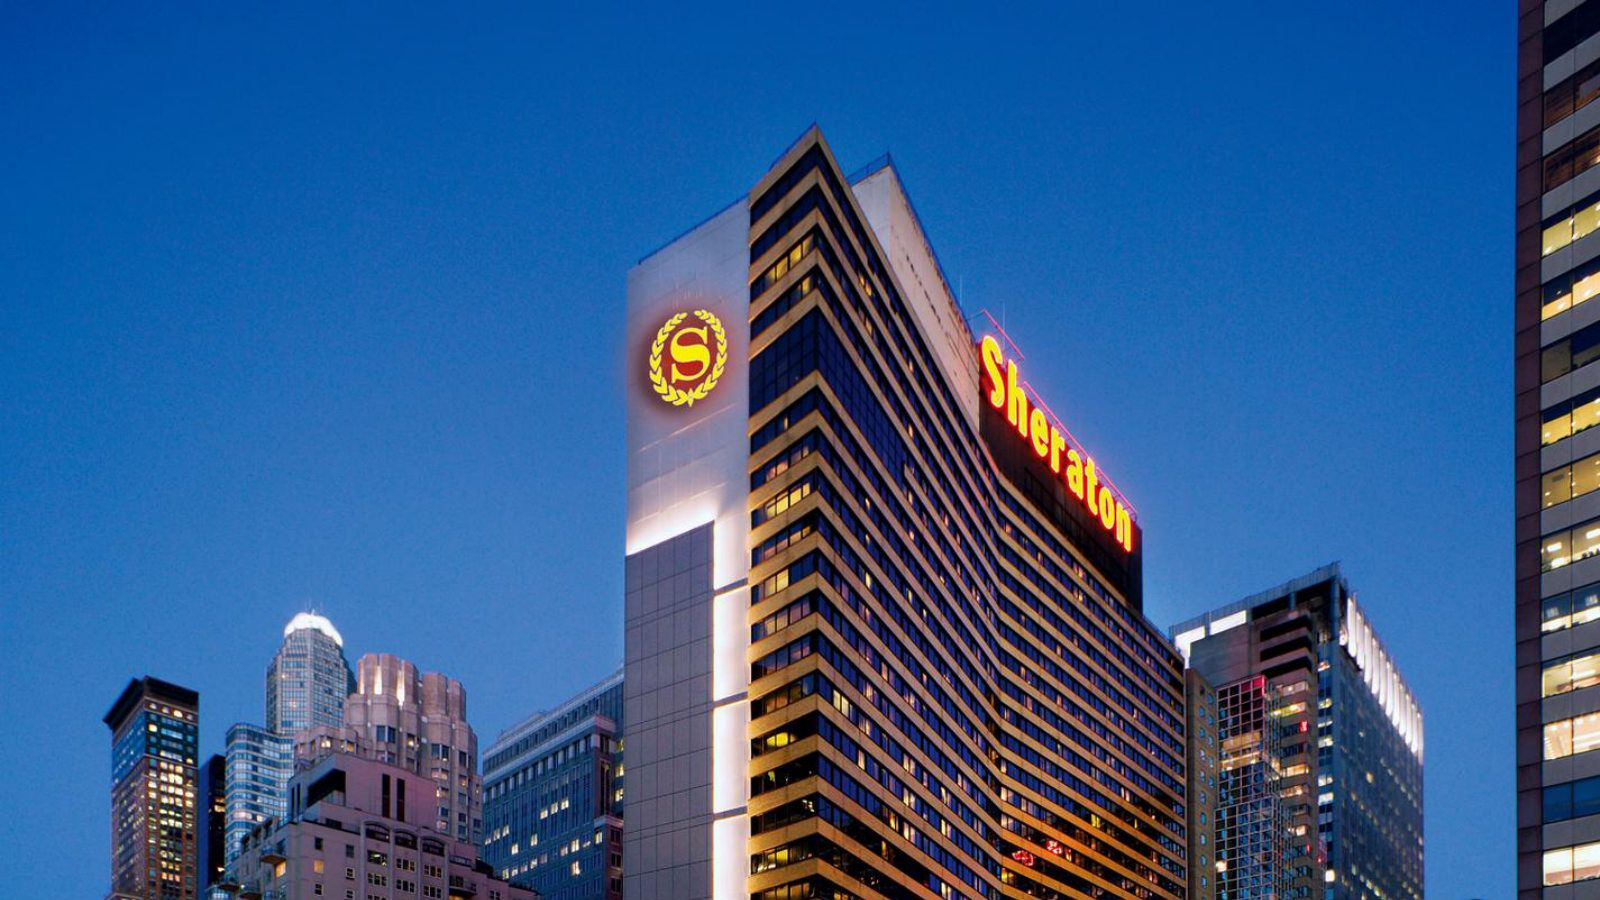 Sheraton time square